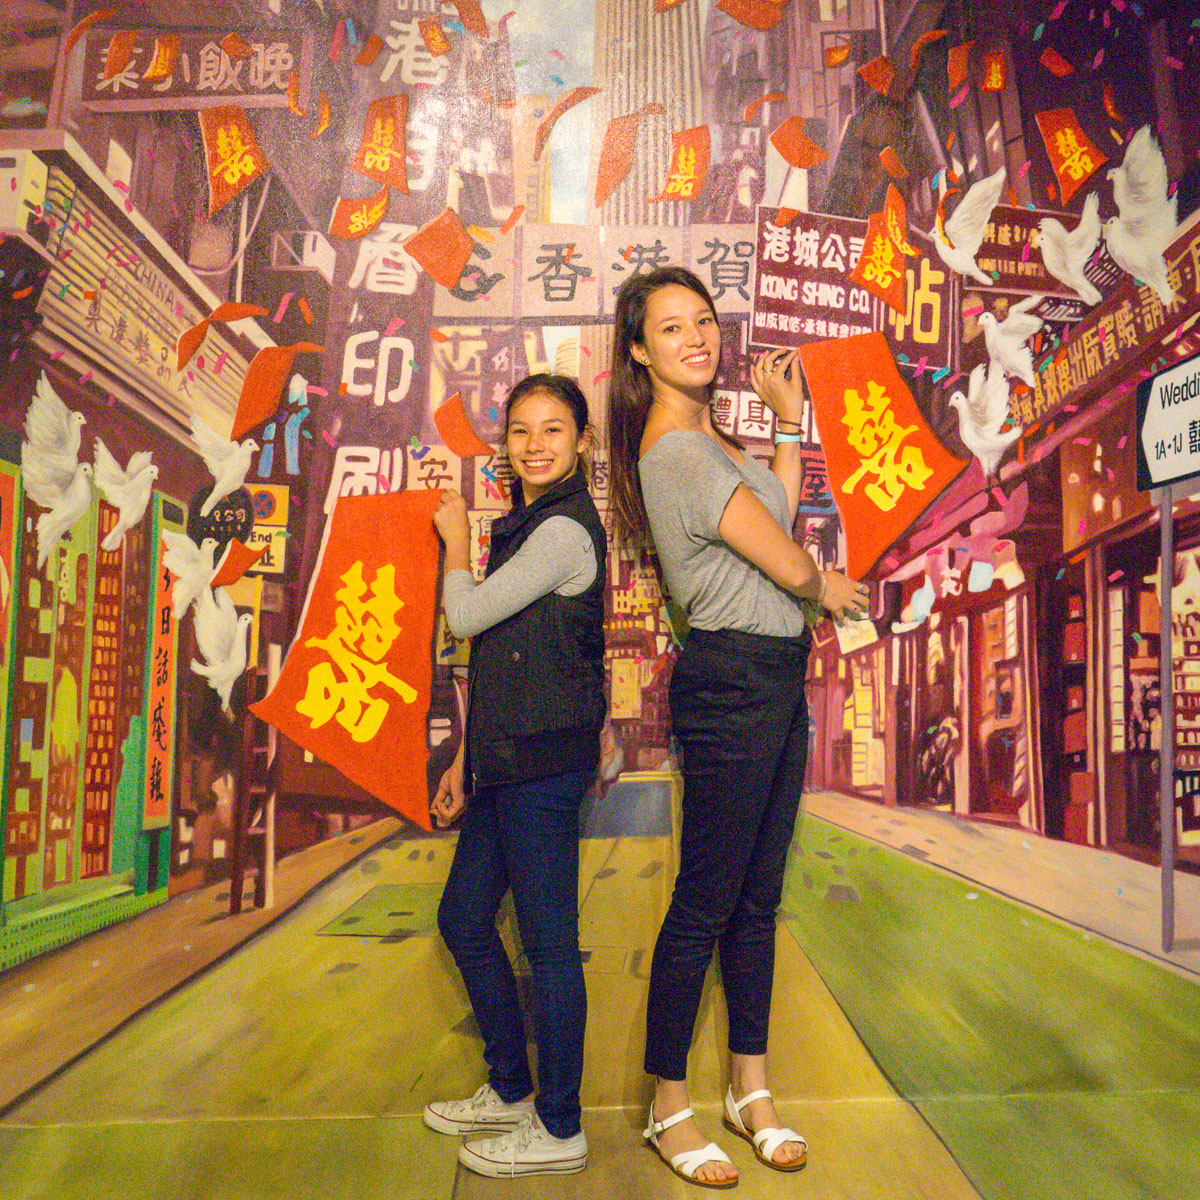 HK3DMUSEUM with Miss14 and Ms20